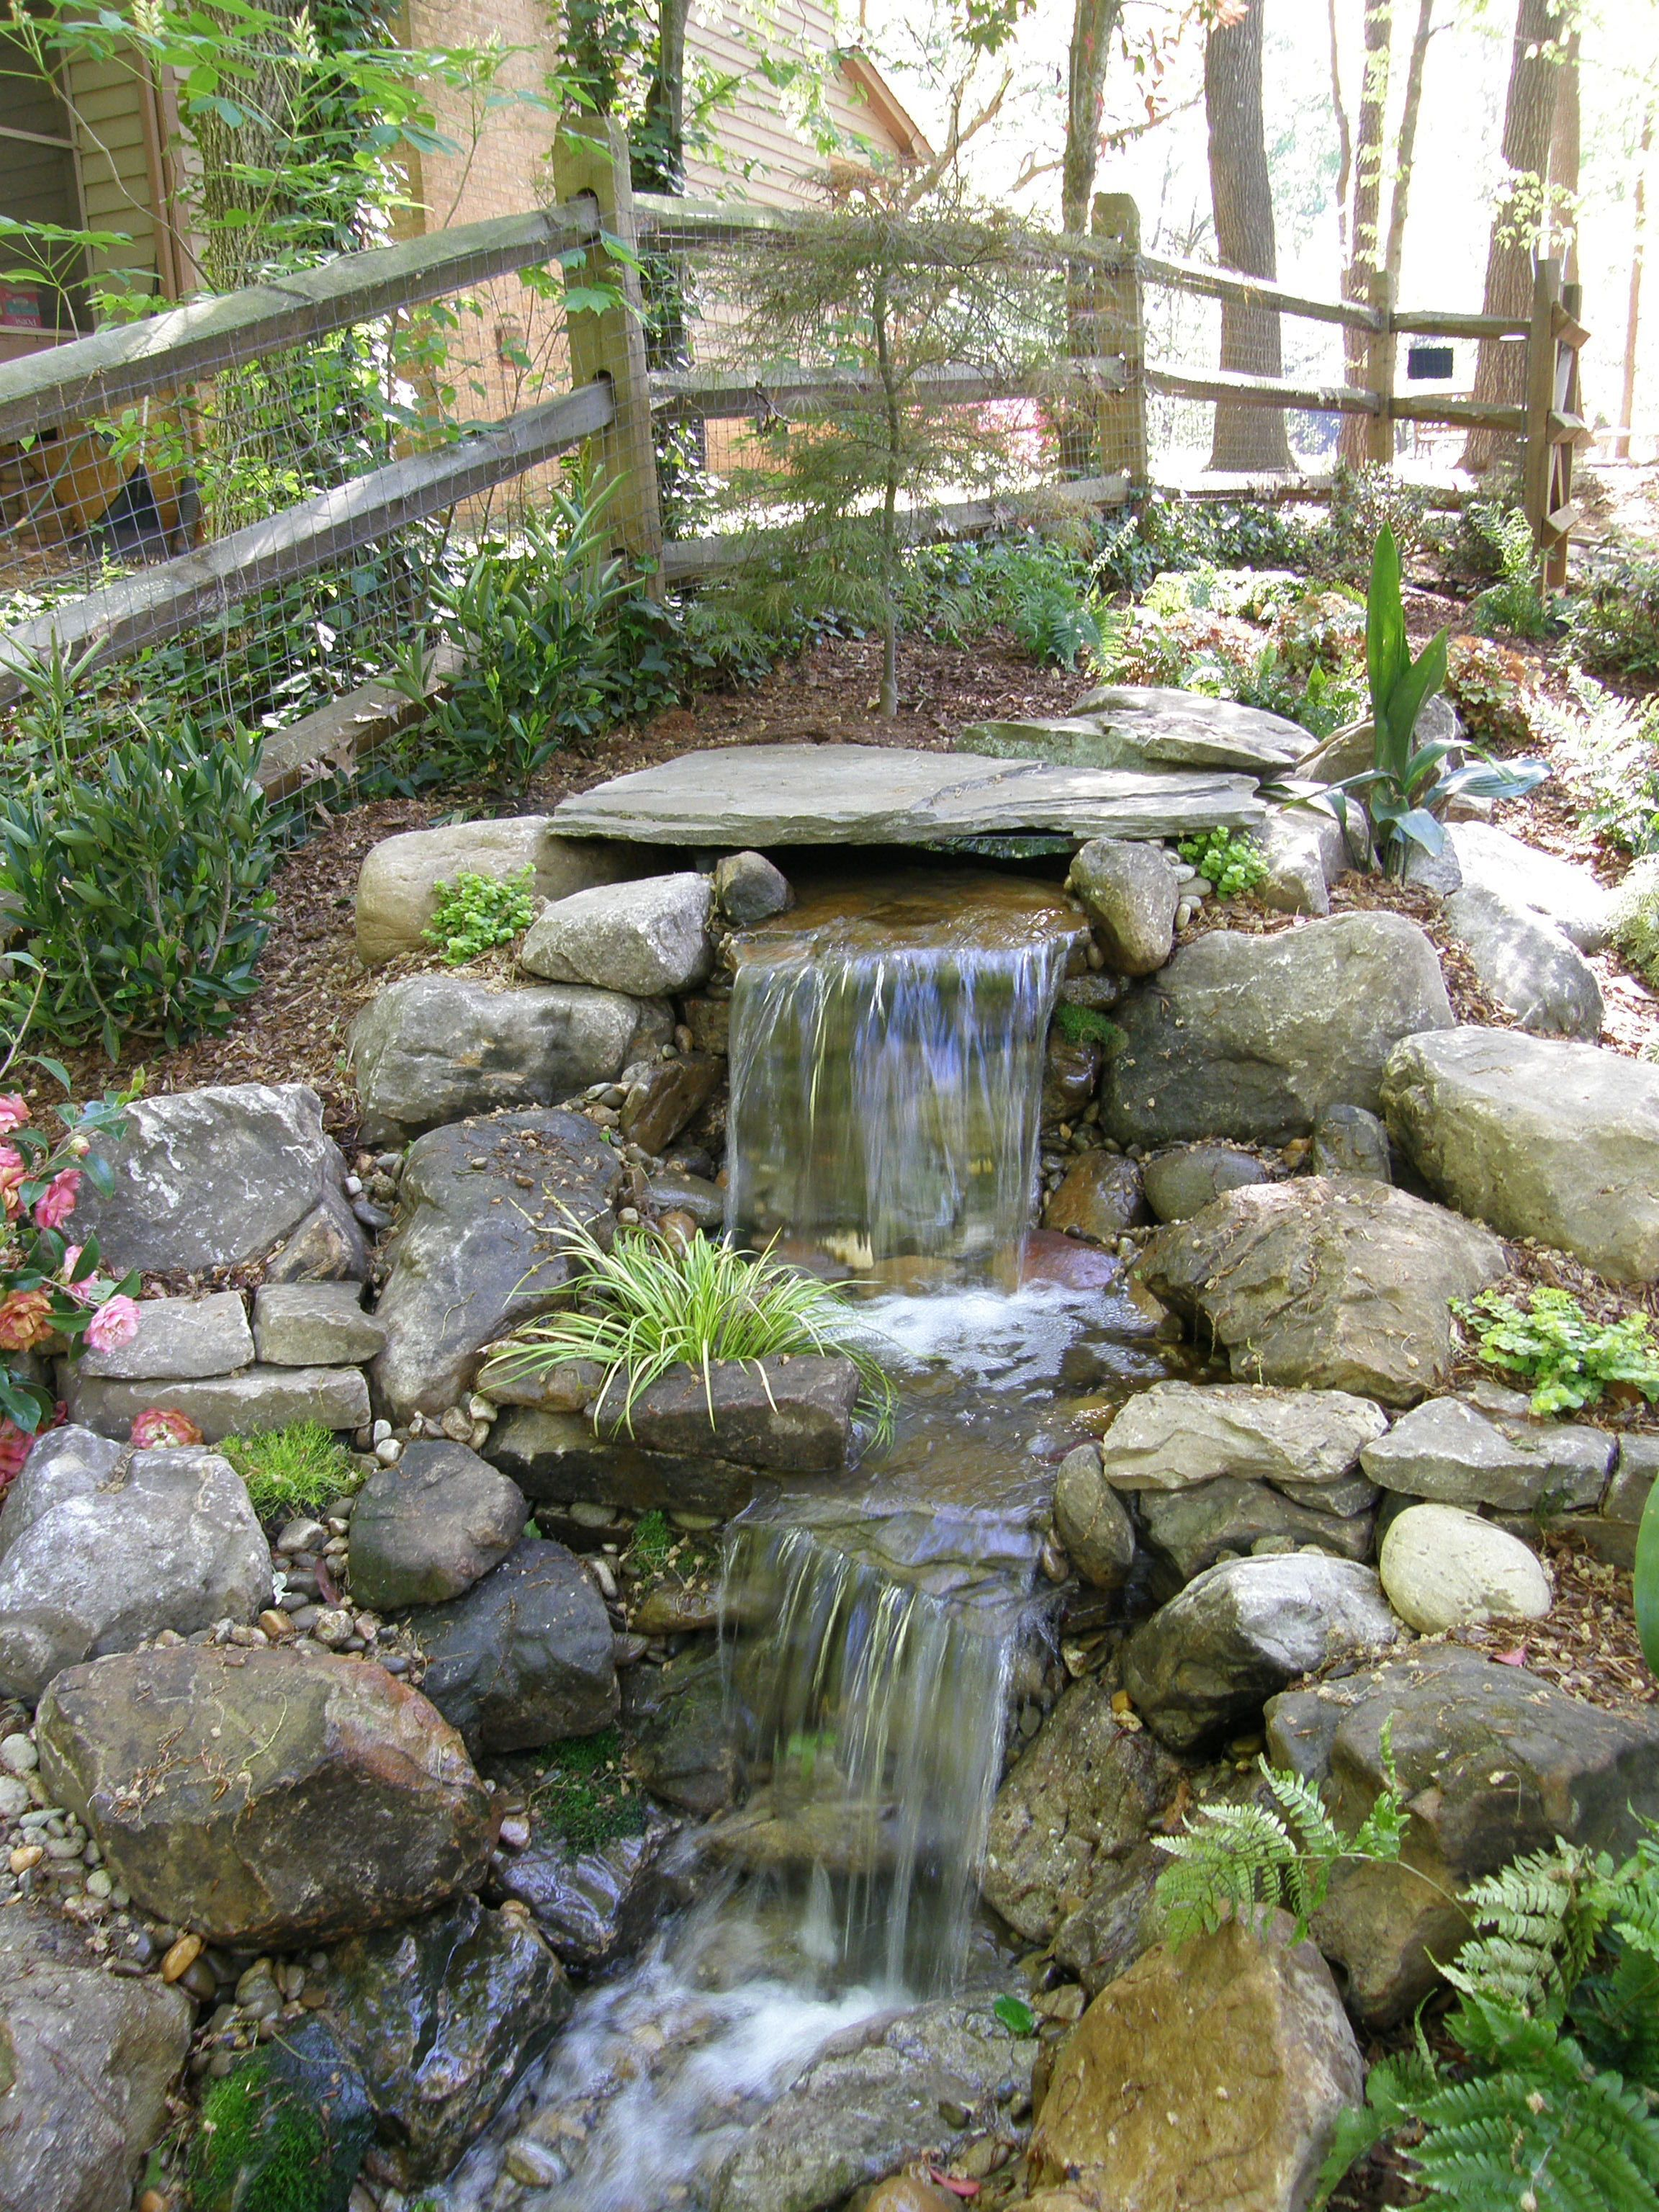 amazing water features on 10 best pictures waterfall ideas to inspire your garden freshouz com waterfalls backyard water features in the garden pond landscaping waterfall ideas to inspire your garden